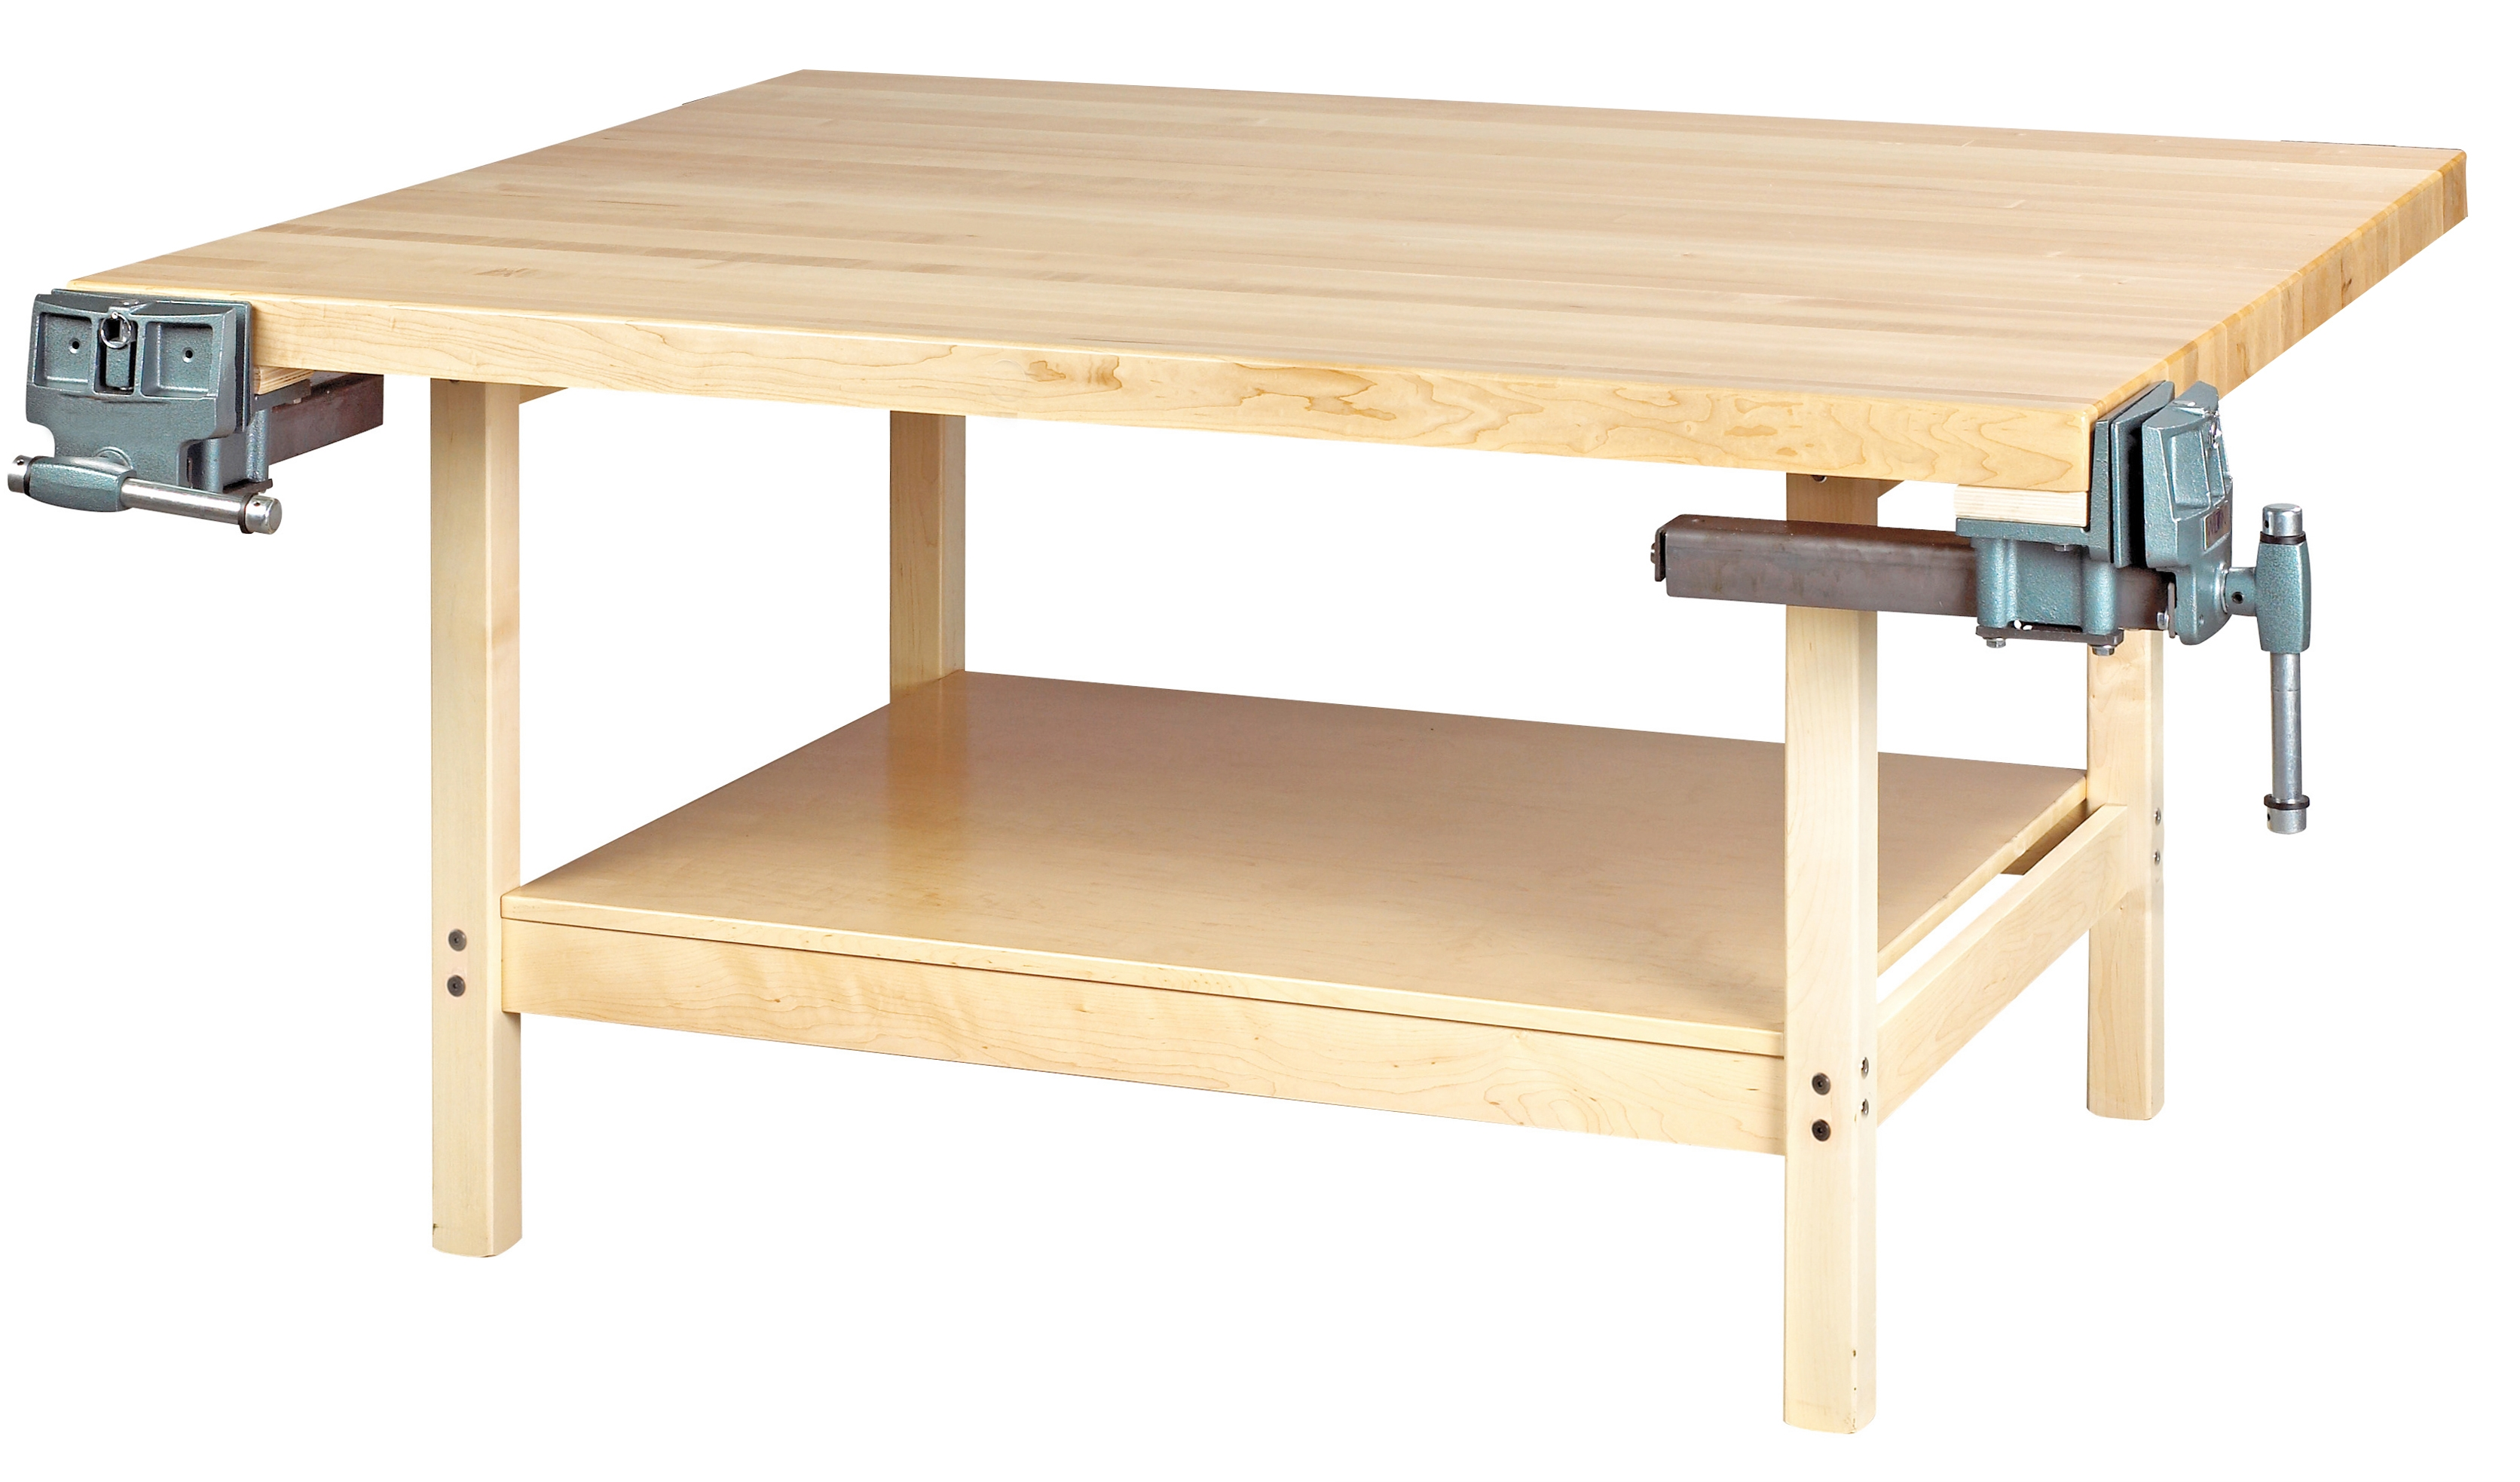 Diversified Woodcrafts 4 Station Workbench with 2 Vises